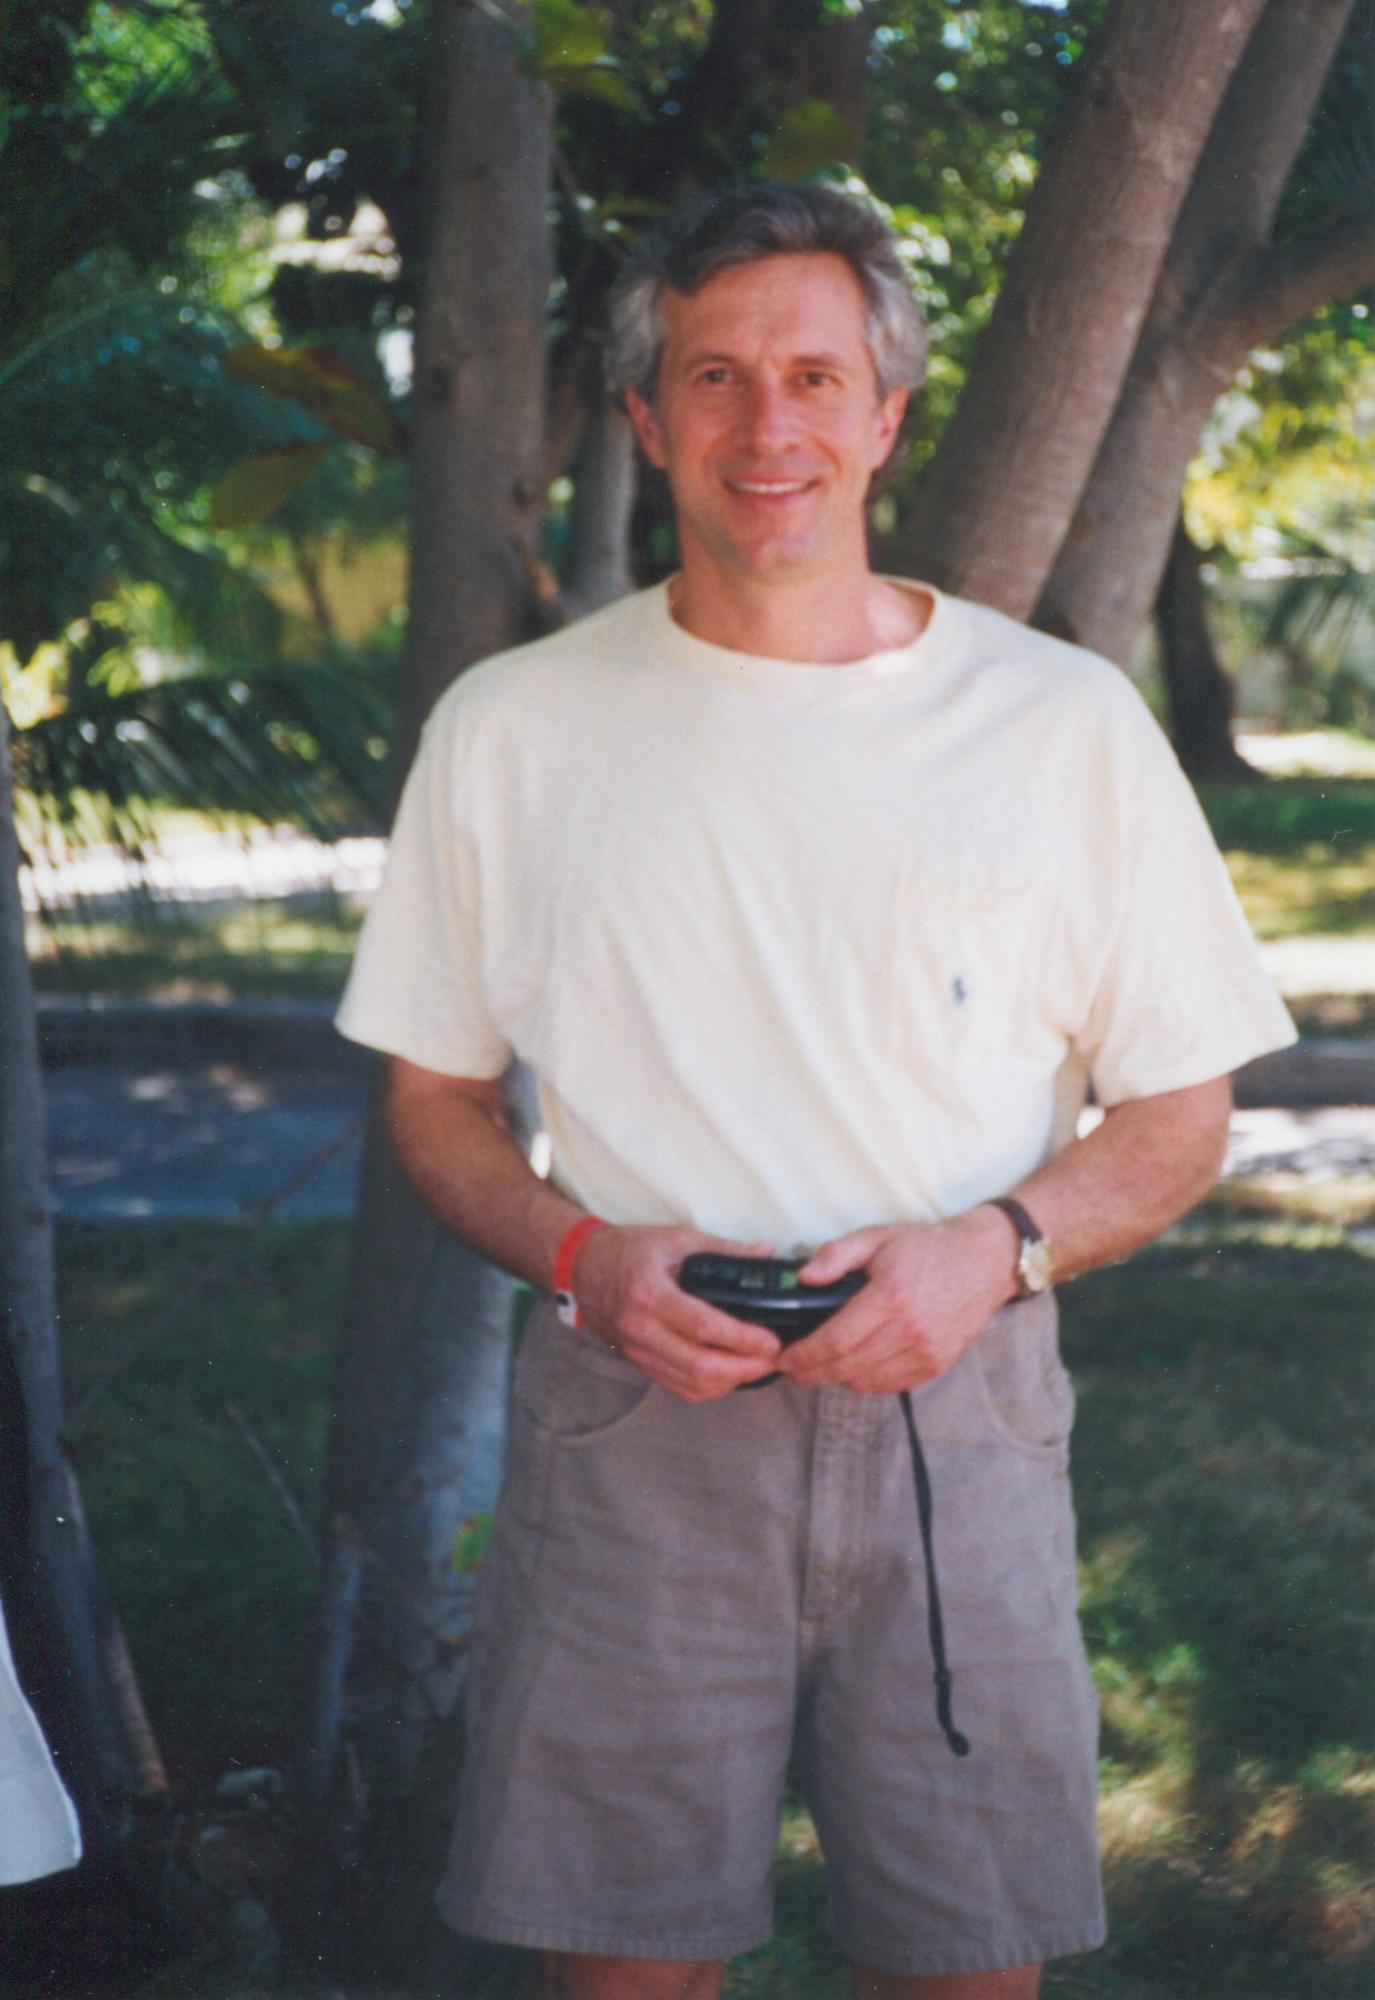 practitioner_relaxed_circa_2001_image15.jpg